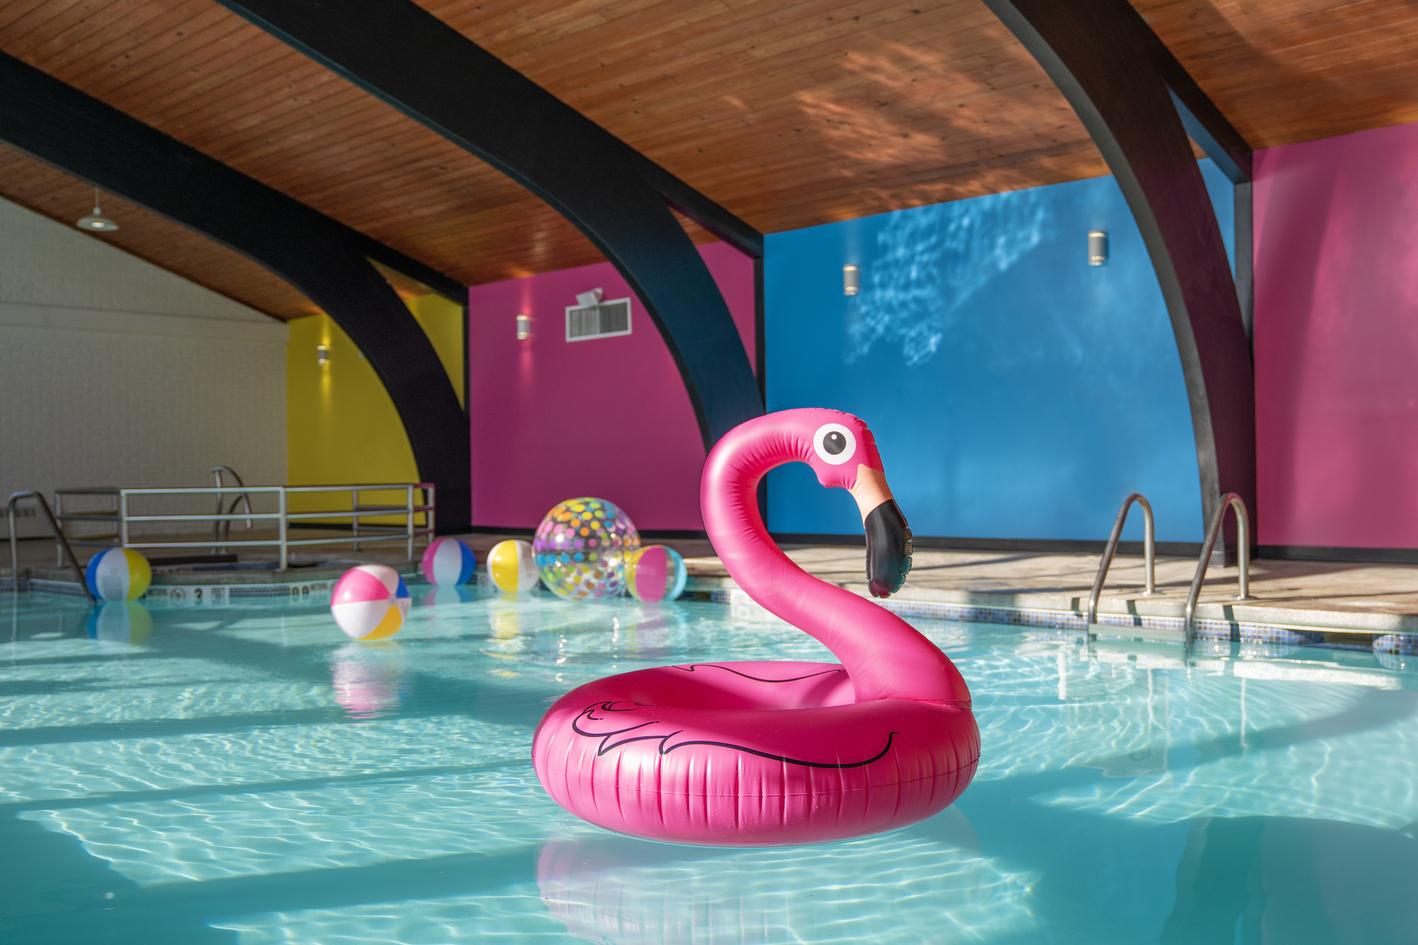 Flamingo pool floaty sitting in an indoor pool